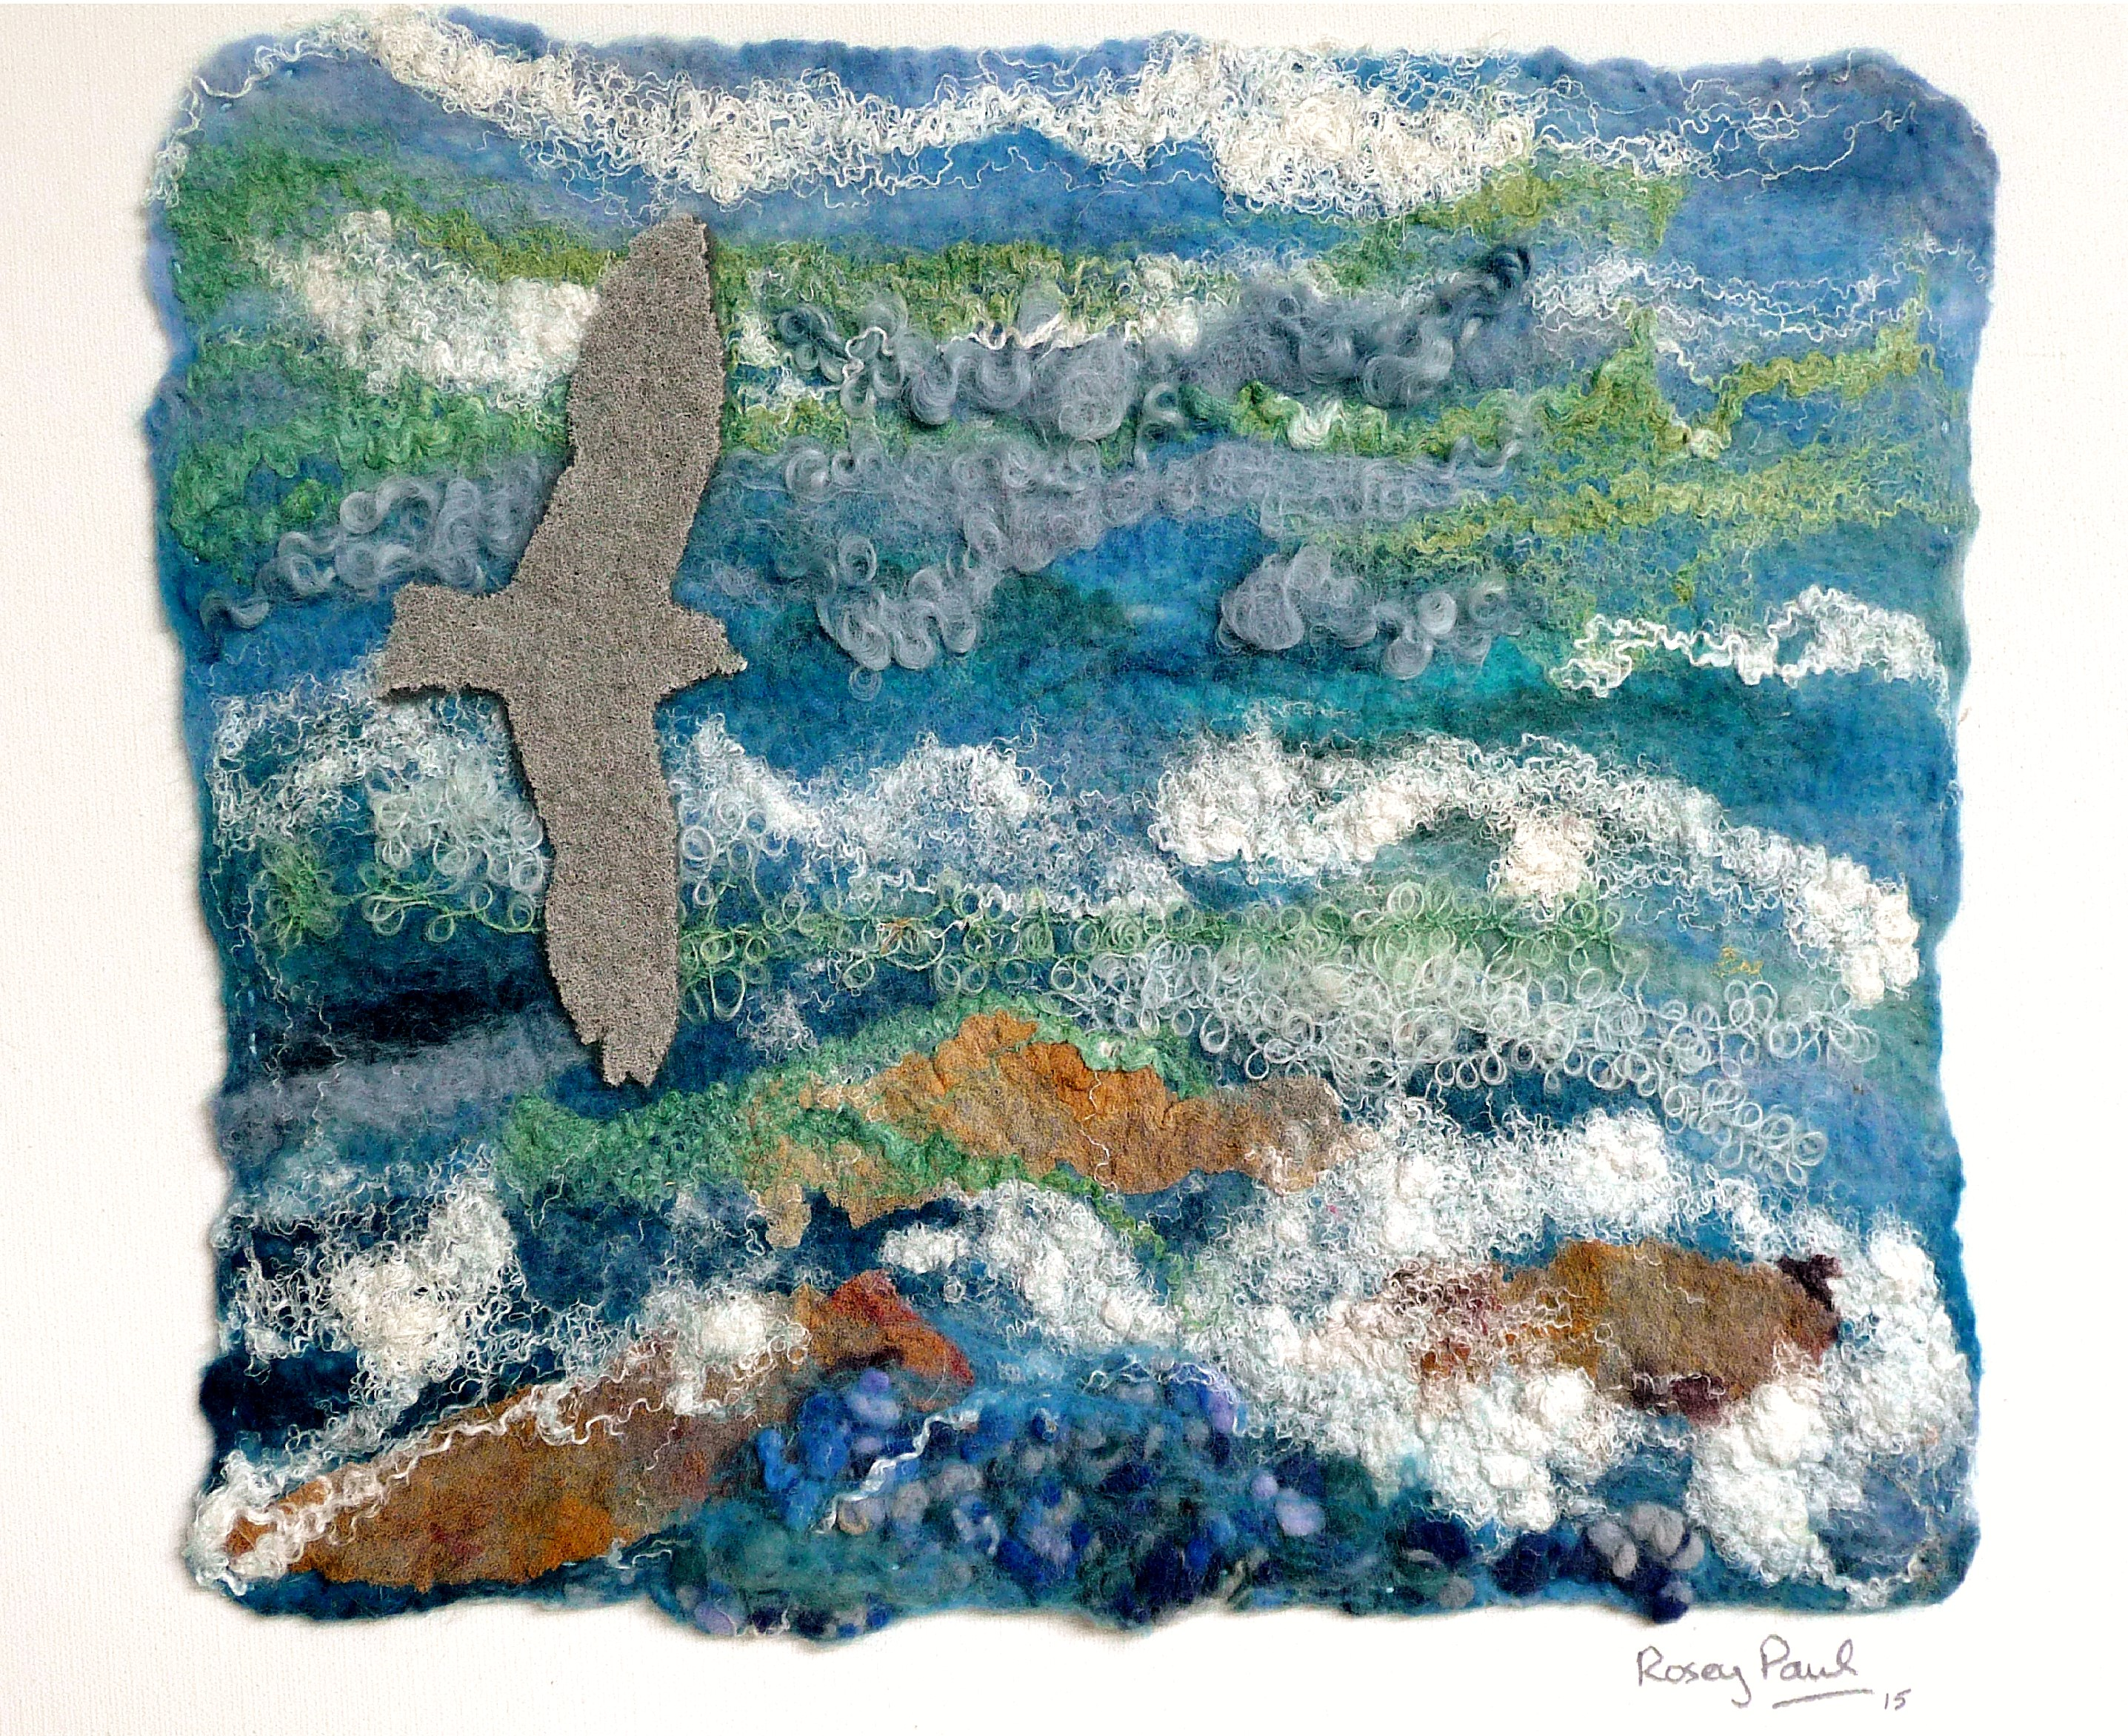 ALONG THE WATER'S EDGE by Rosie Paul, hand-felted textile